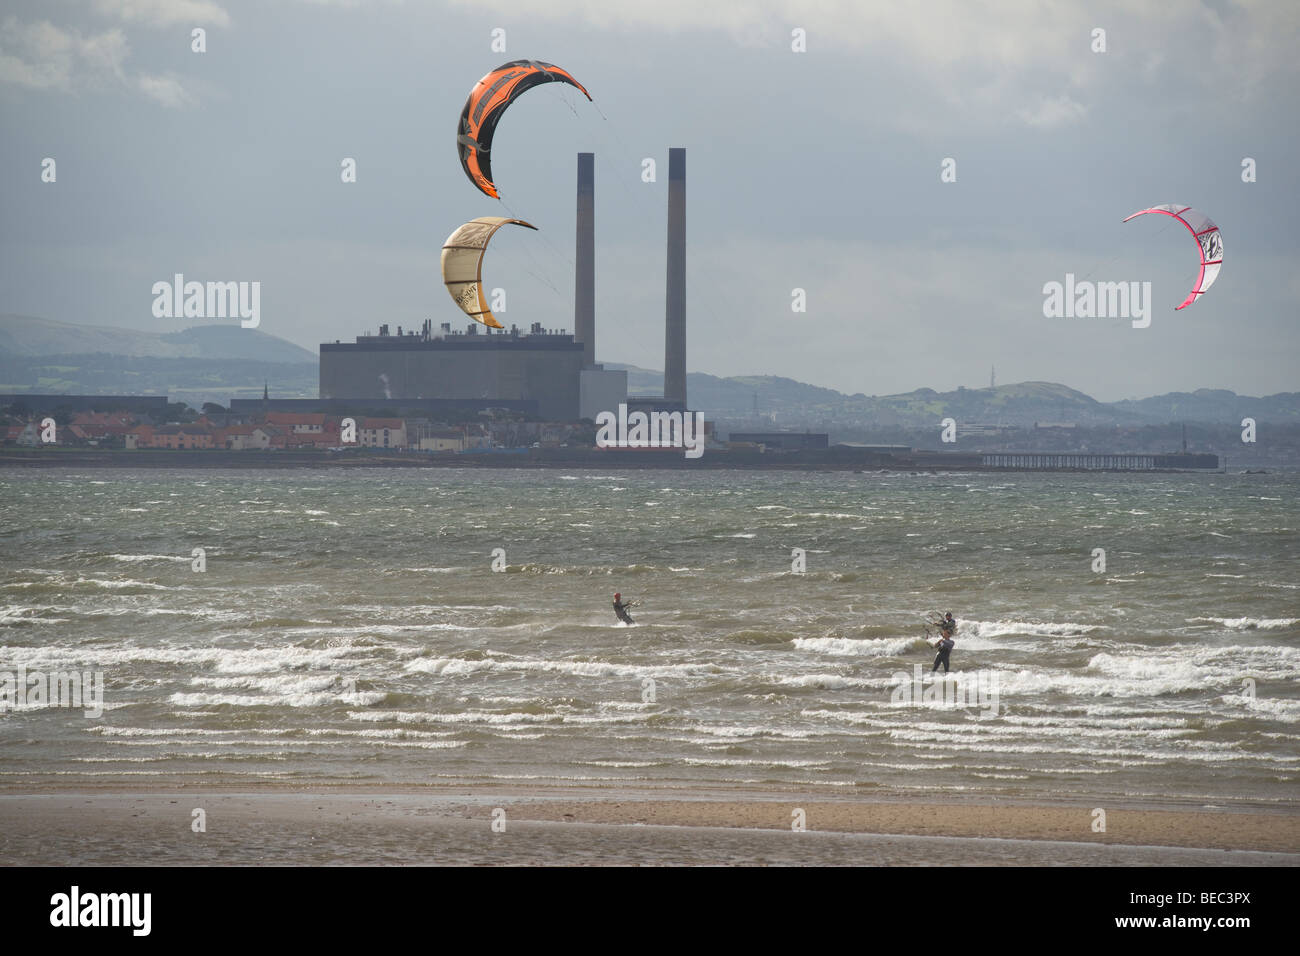 Kite boarding off Cockenzie Power Station, East Lothian, Scotland, September, 2009 - Stock Image